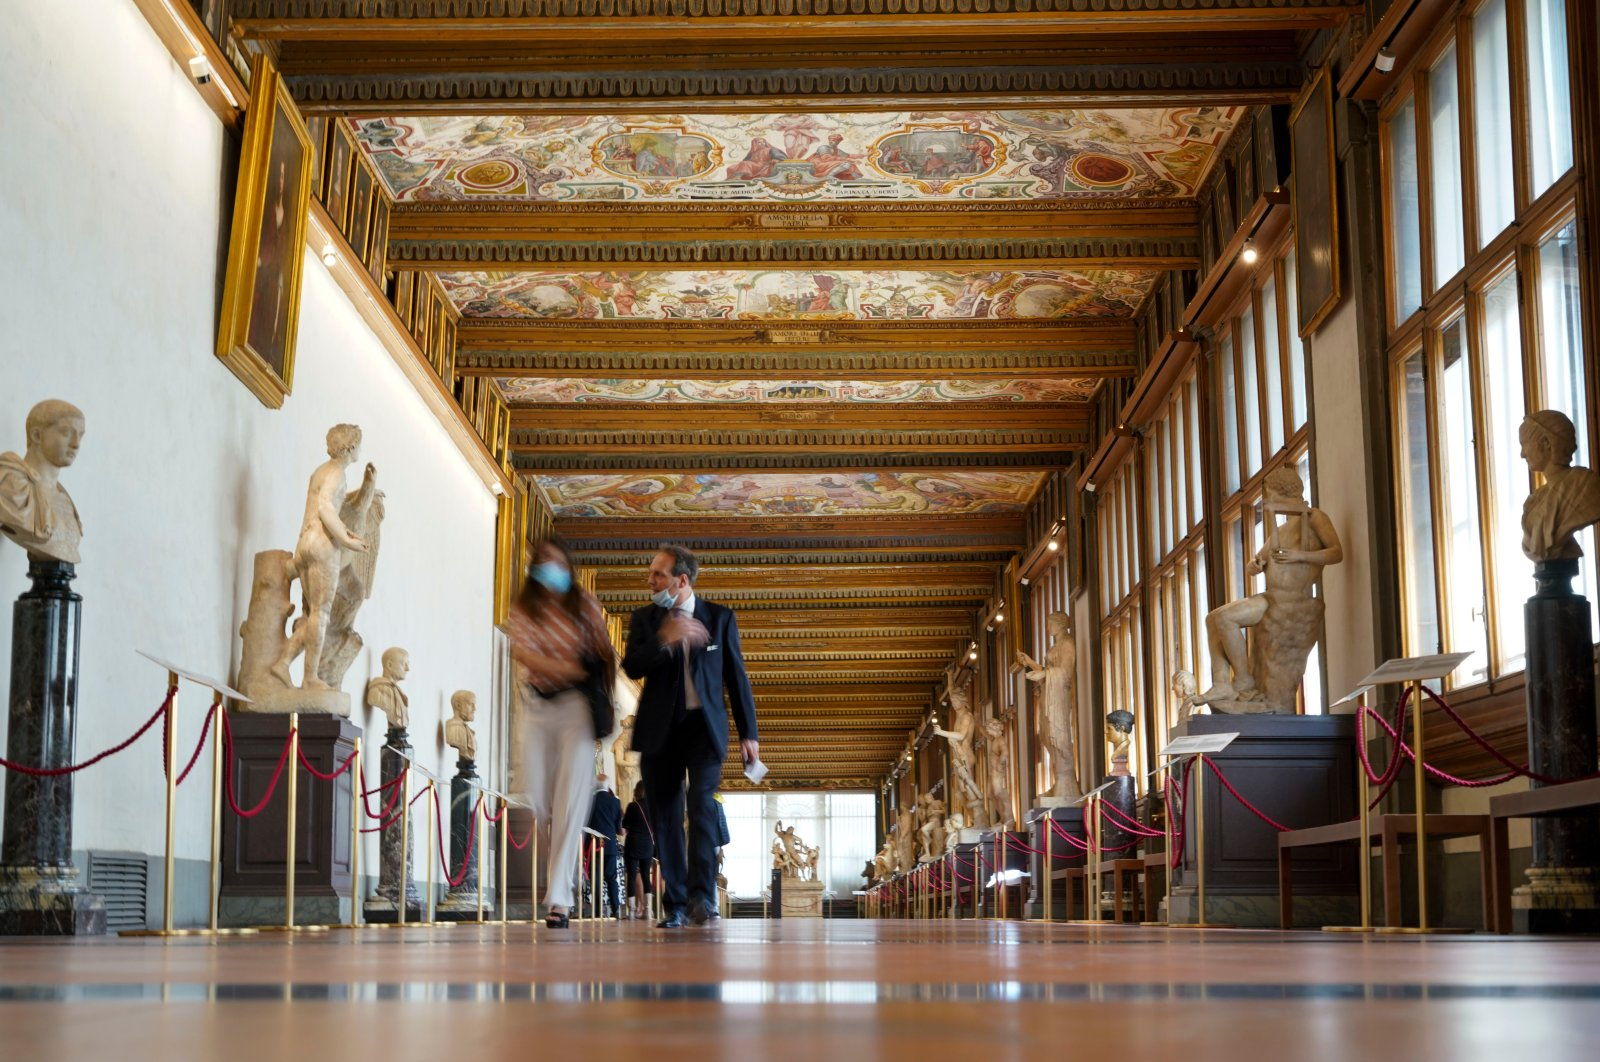 People walk in the Uffizi Gallery during a press tour on the reopening day of the museum, in Florence, Italy, June 3, 2020. (AP Photo)